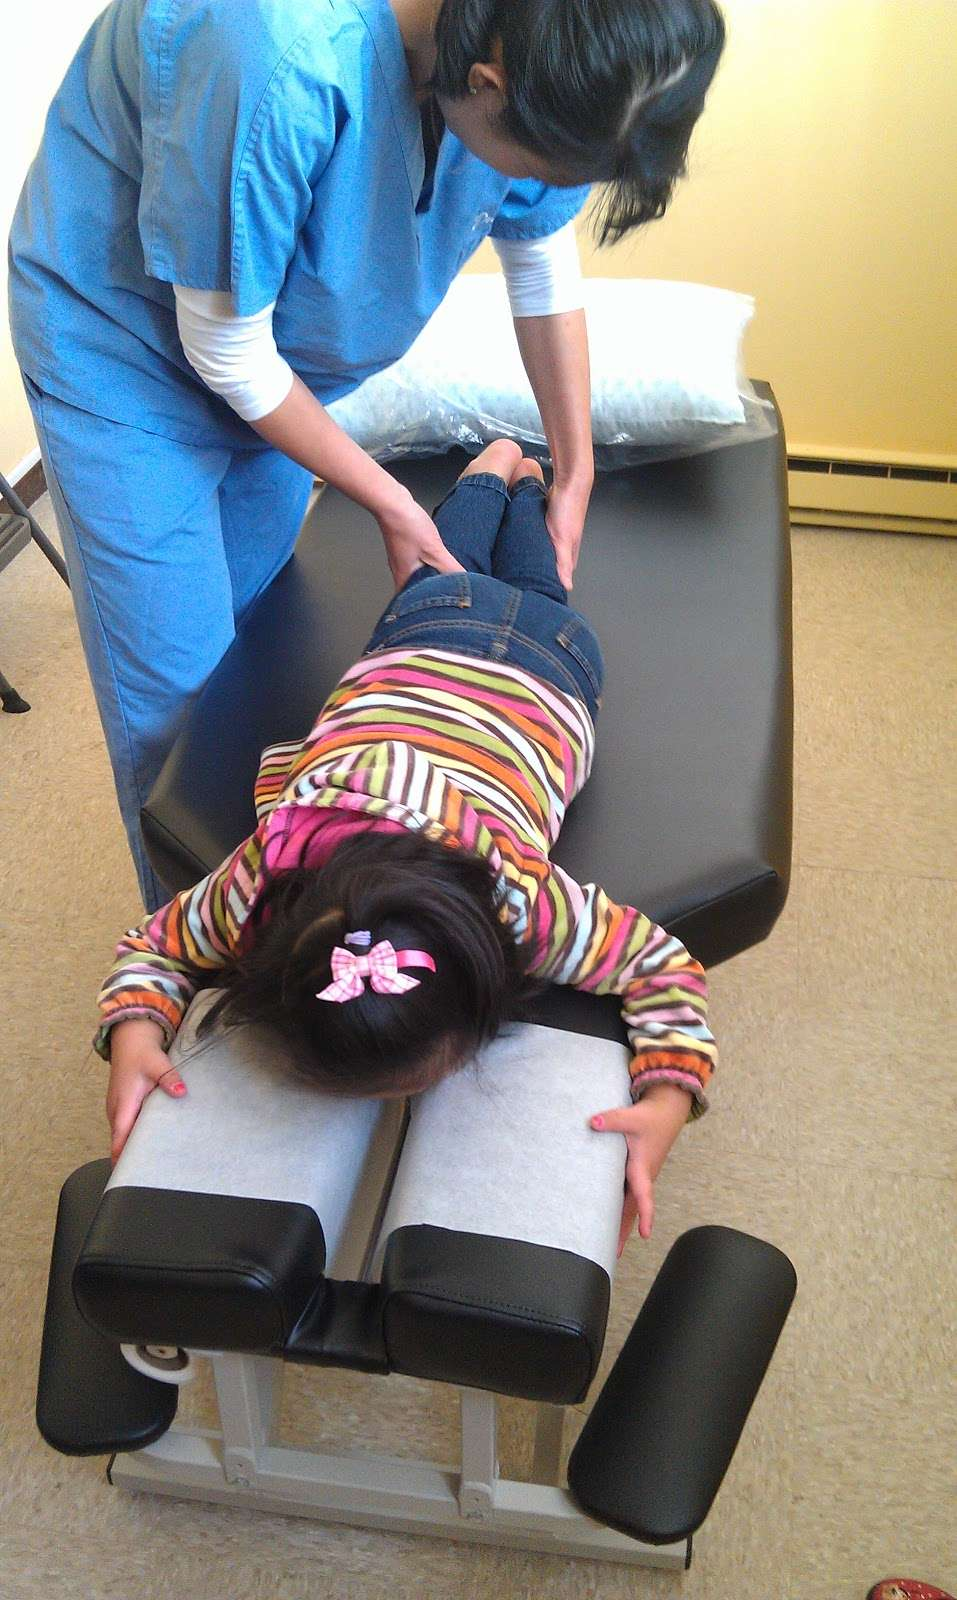 Annalee Chiropractic Care - doctor  | Photo 6 of 10 | Address: 920 Main St 2nd floor, Hackensack, NJ 07601, USA | Phone: (201) 530-0060